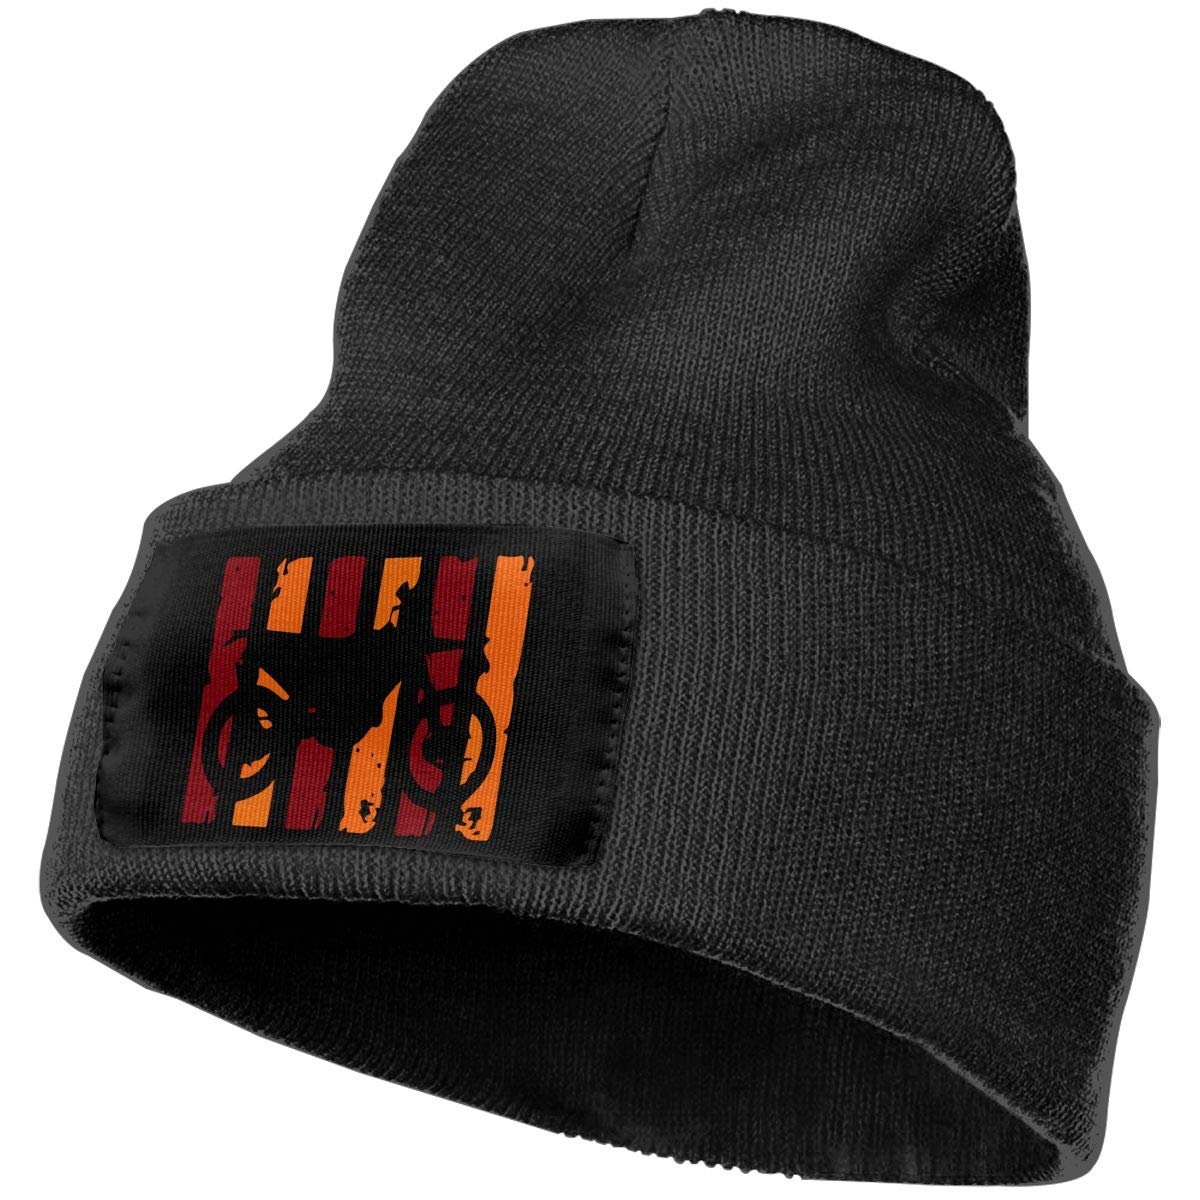 COLLJL-8 Men /& Women Orange /& Red Dirt Bike Flag Outdoor Fashion Knit Beanies Hat Soft Winter Knit Caps